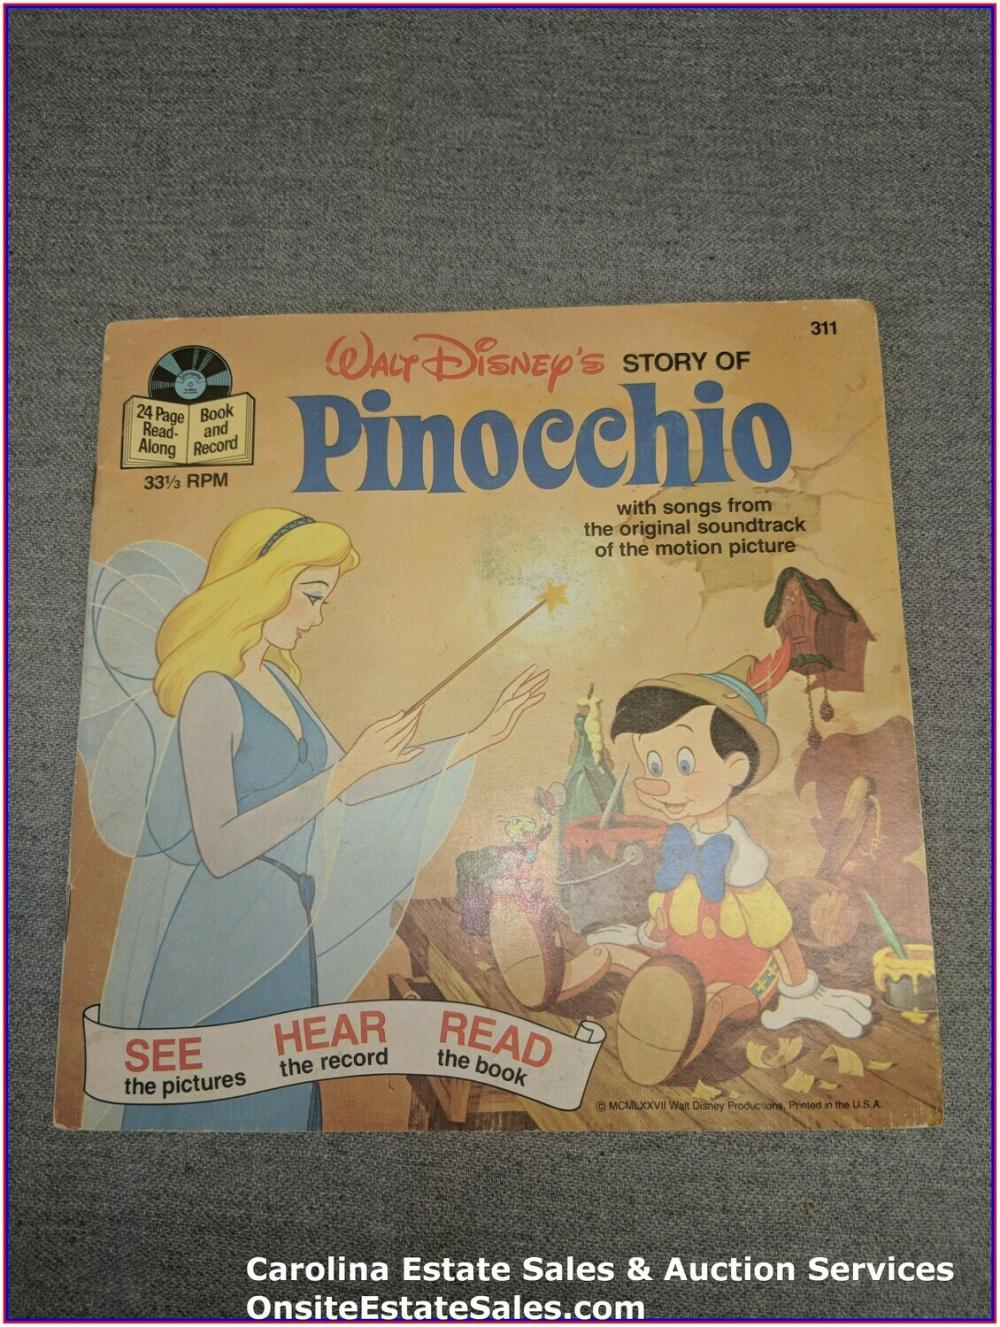 Pinocchio - Disney Book & Record